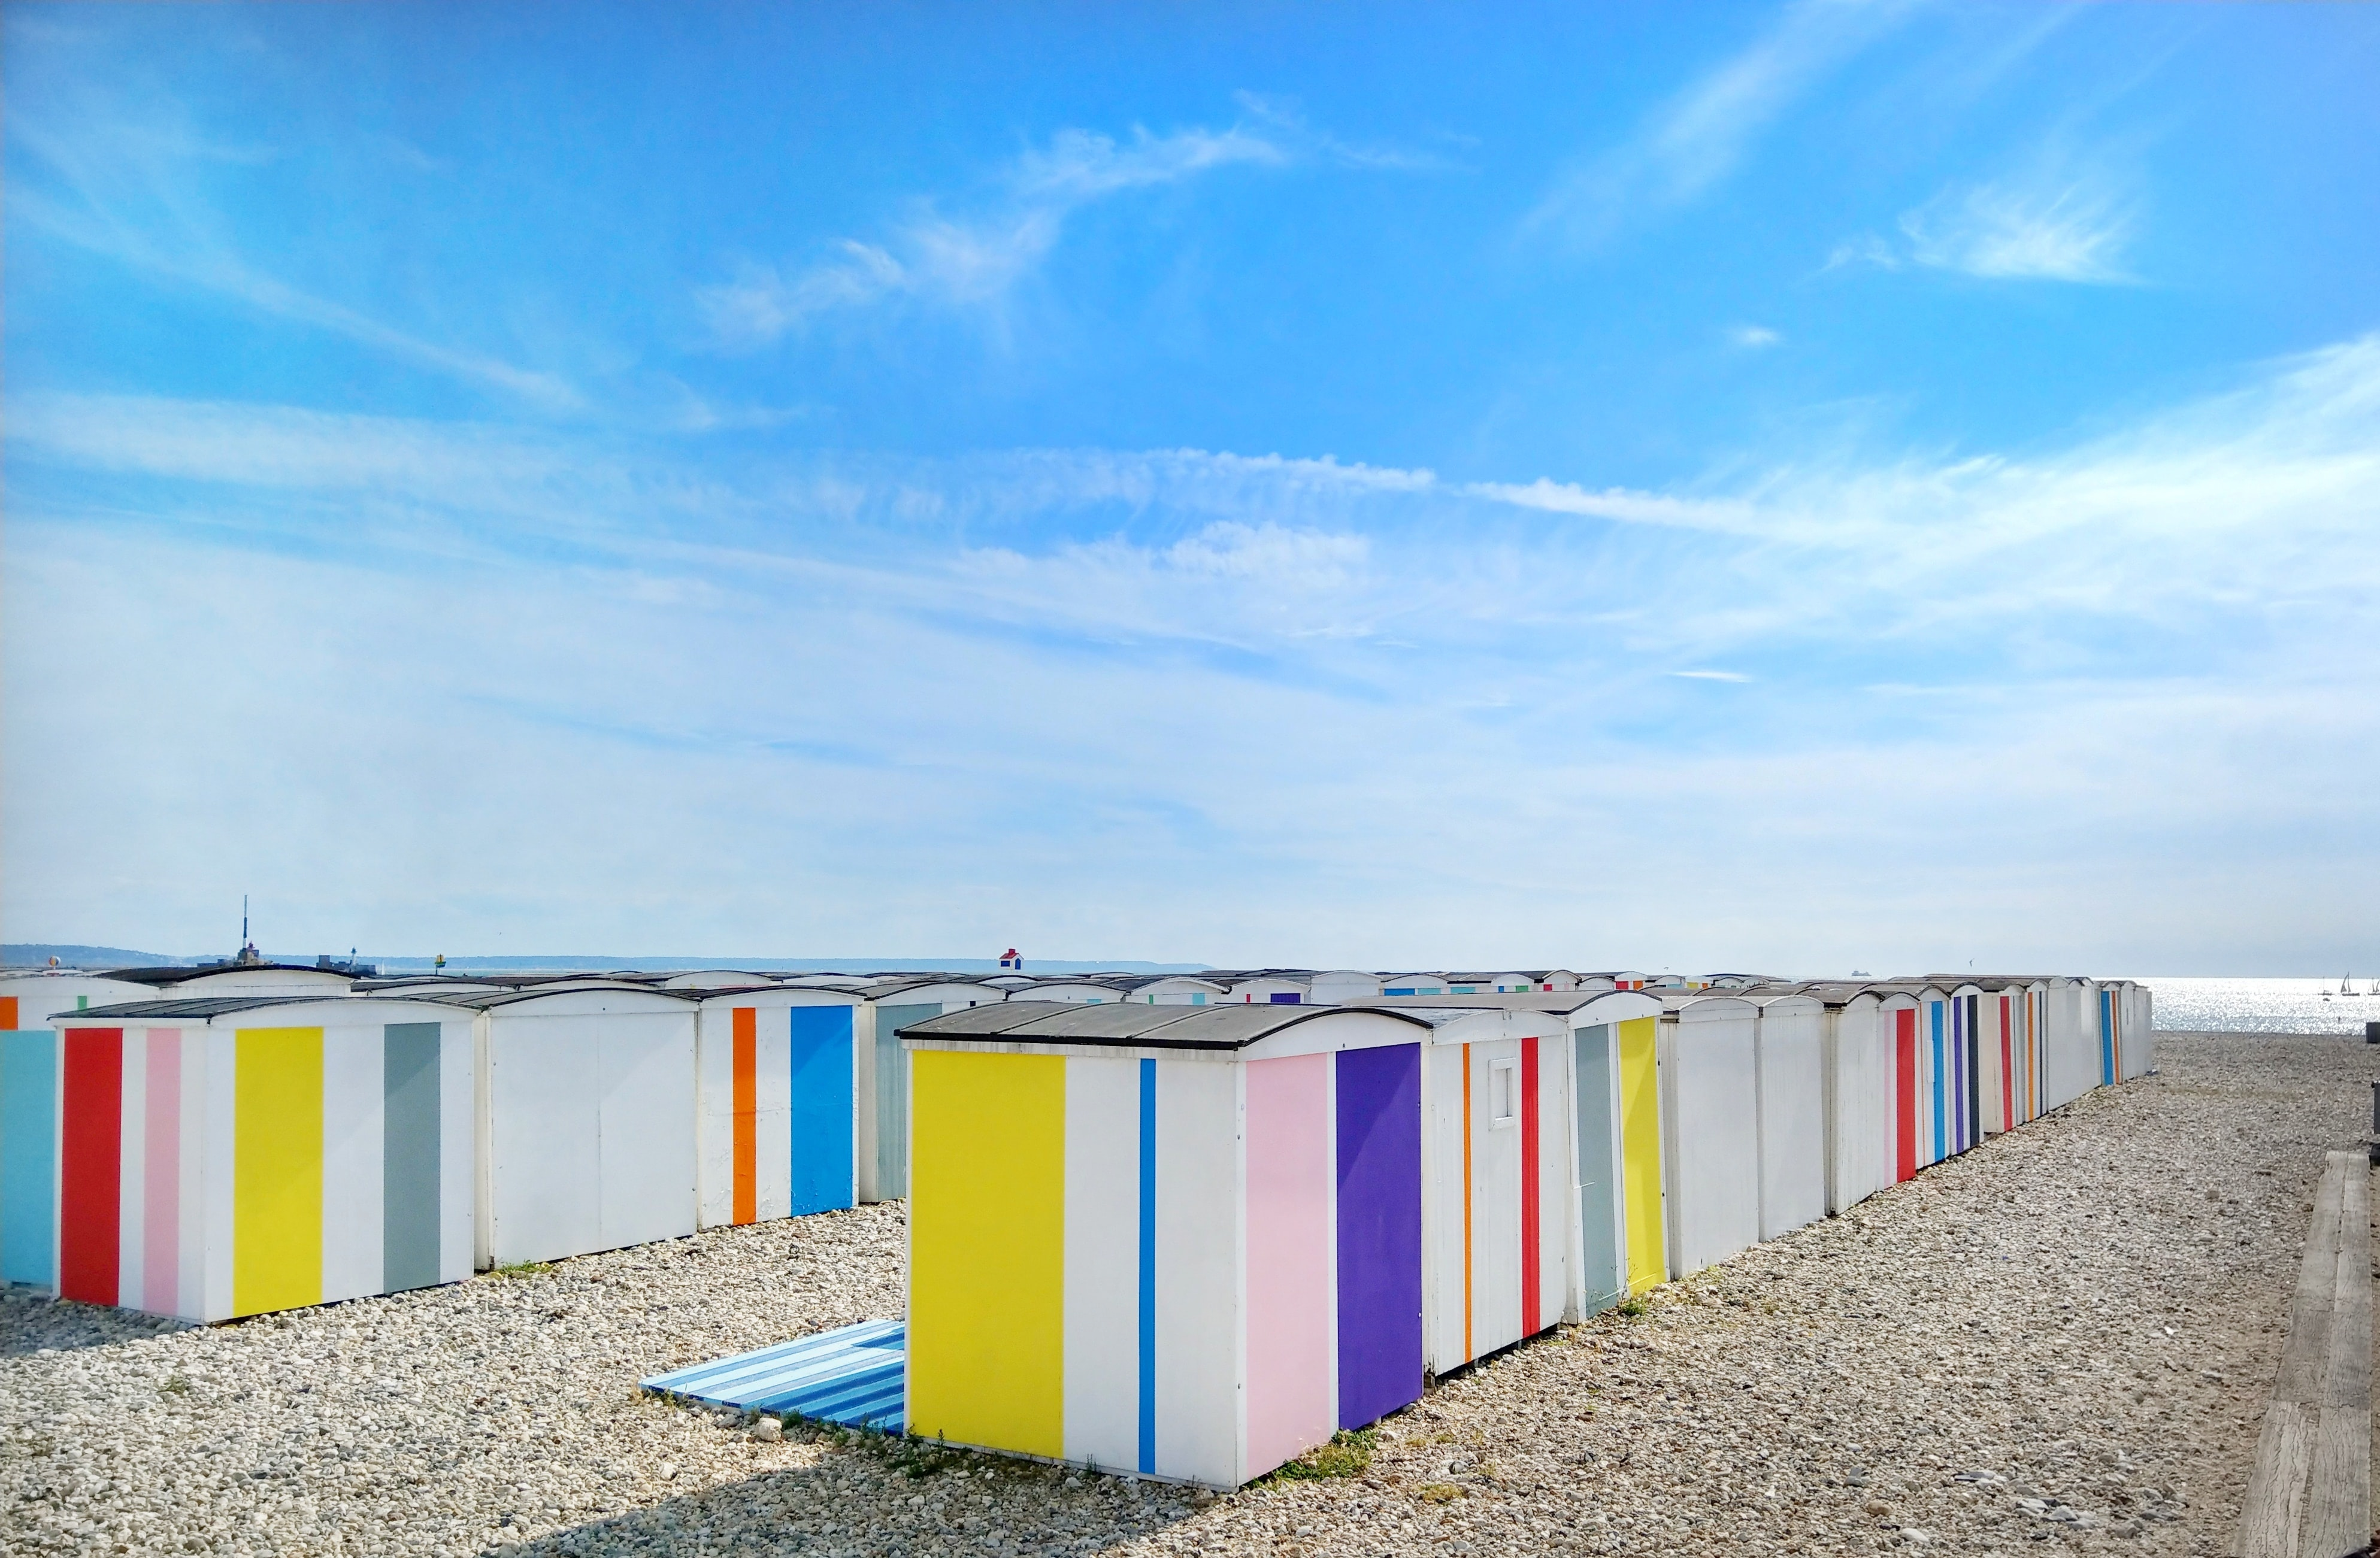 Colorful beach changing rooms at the pebble beach in Le Havre